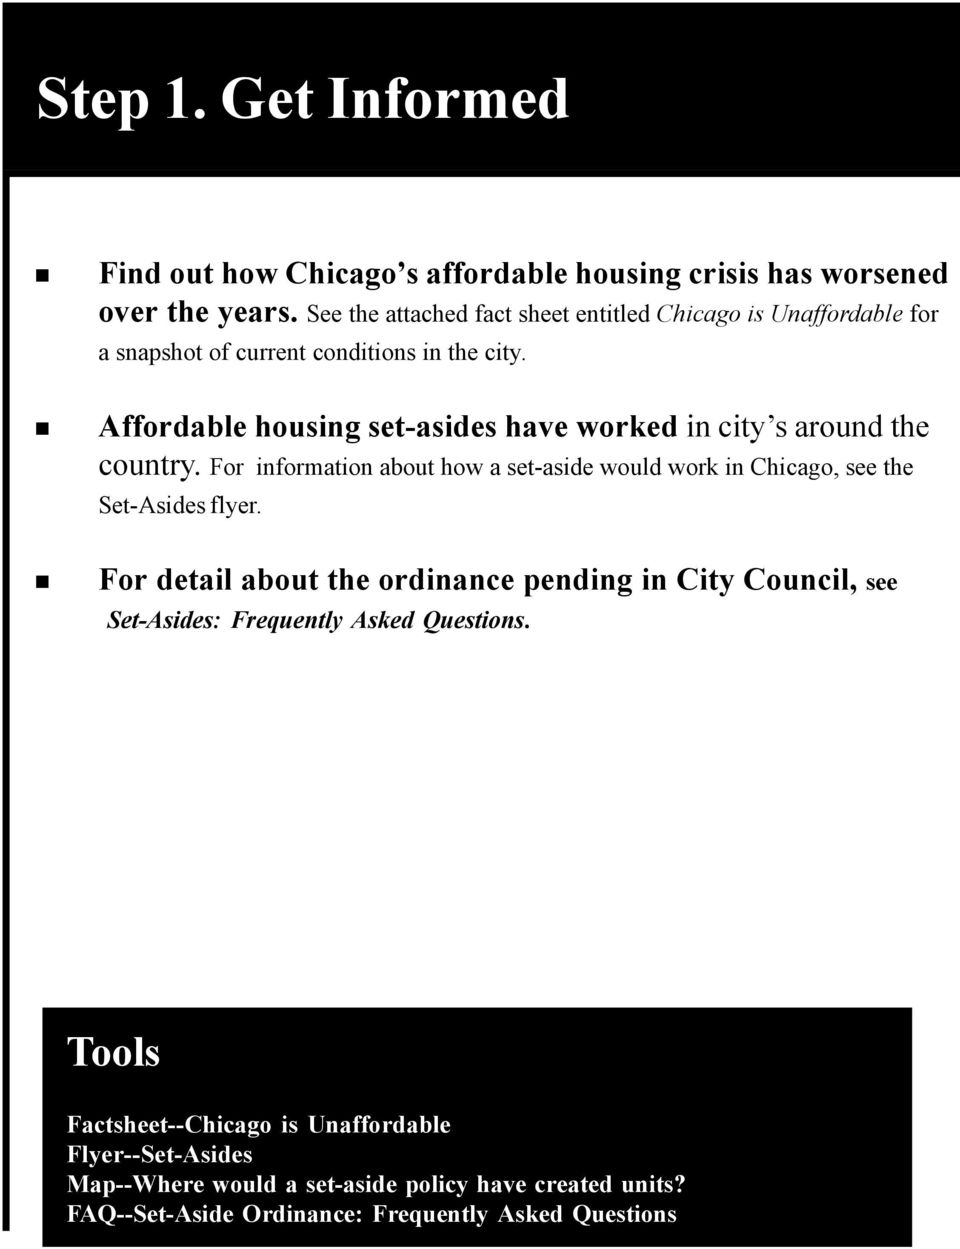 Affordable housing set-asides have worked in city s around the country. For information about how a set-aside would work in Chicago, see the Set-Asides flyer.